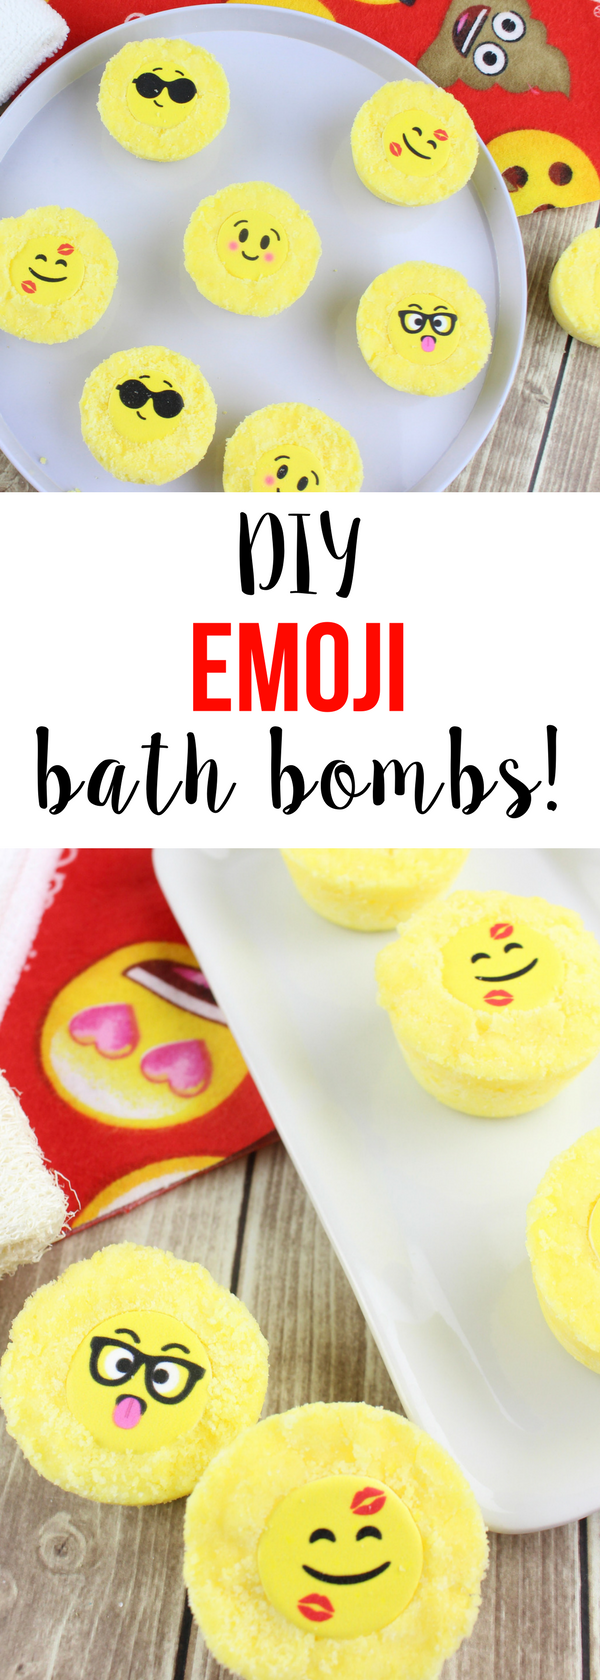 Emoji bath bombs recipe emoji faces diy baths and bath bomb do it yourself bath bombs with cute emoji faces get the ingredient list and recipe solutioingenieria Gallery